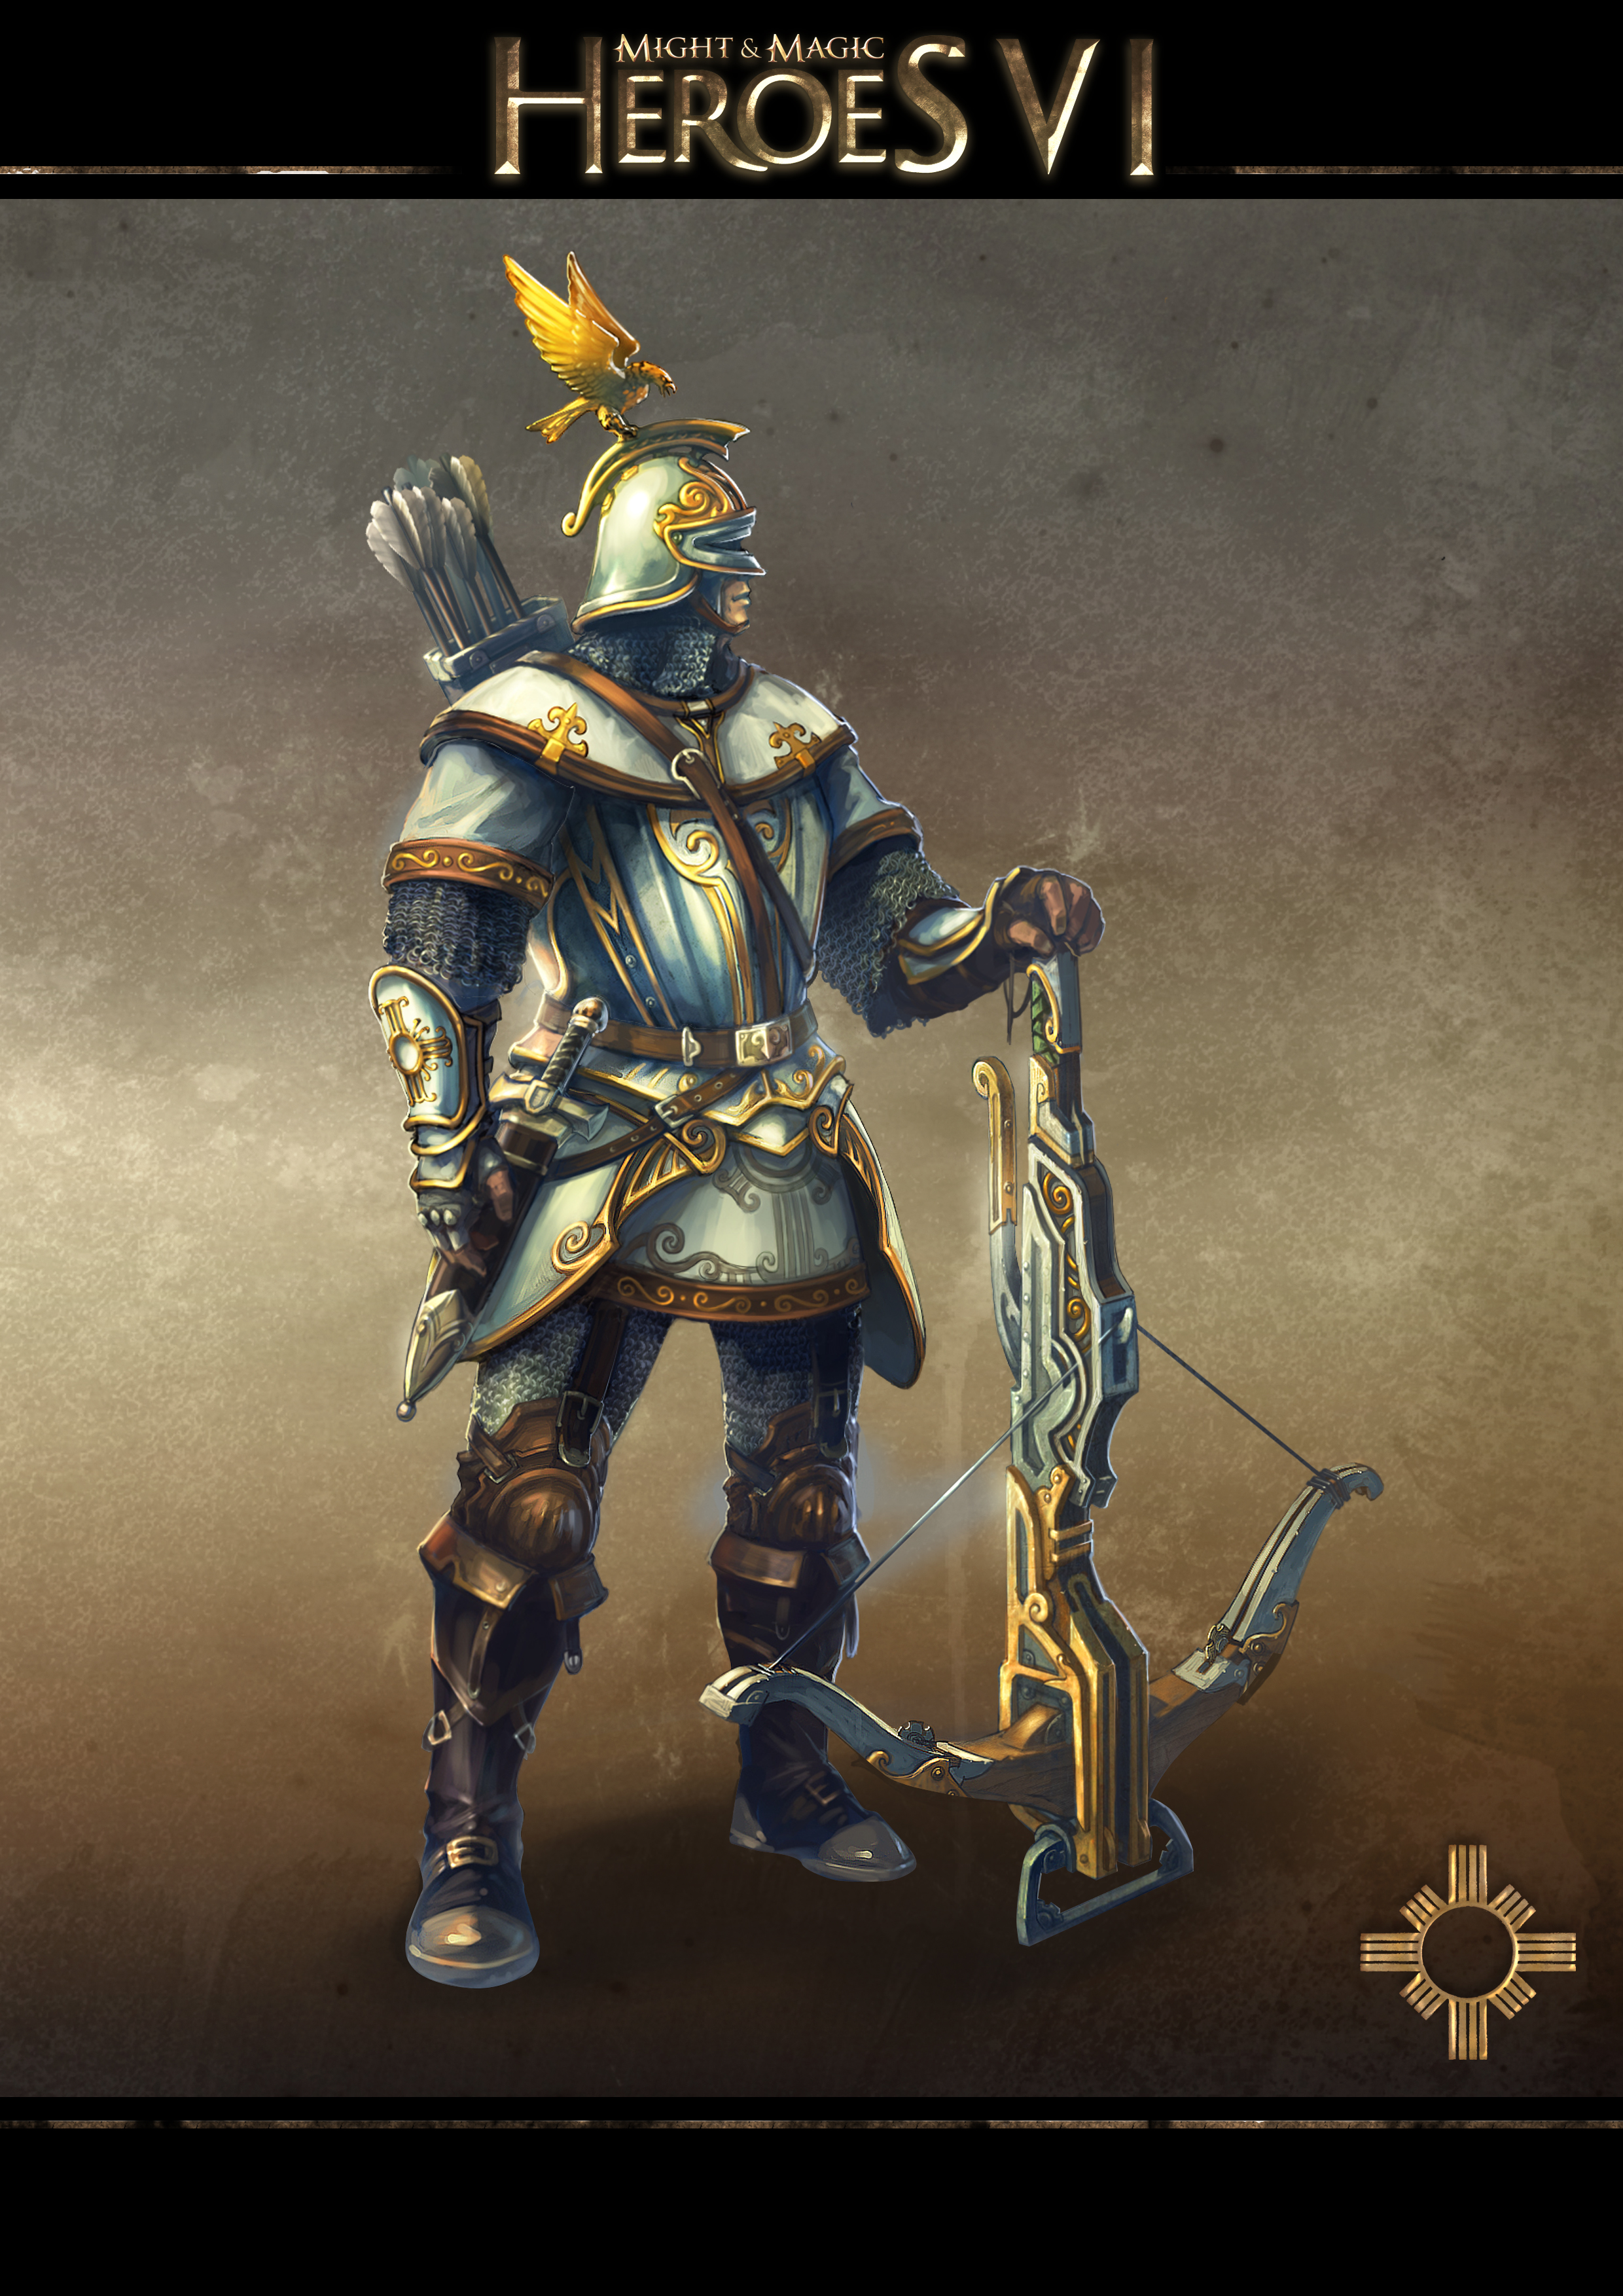 Might and Magic Heroes-6 24.jpg - Might and Magic: Heroes 6